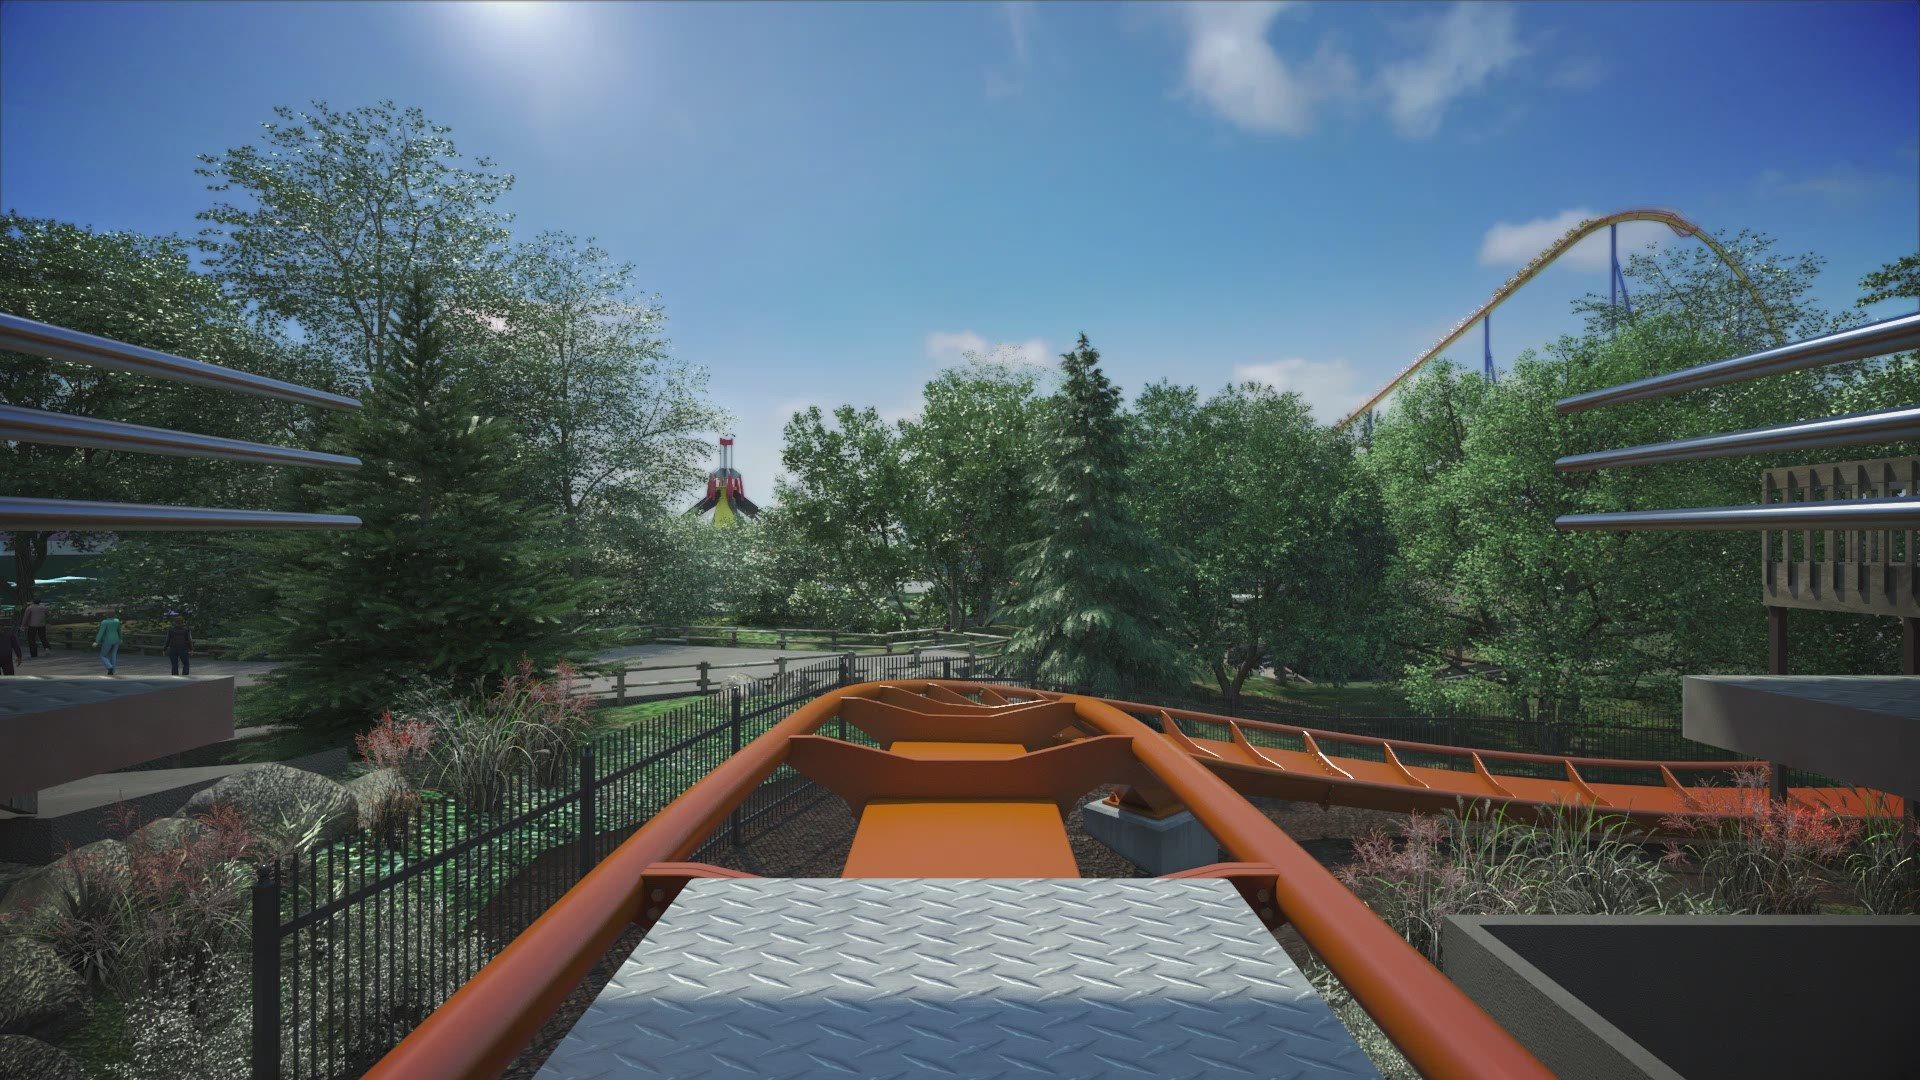 What It S Like To Ride Yukon Striker Roller Coaster At Canada S